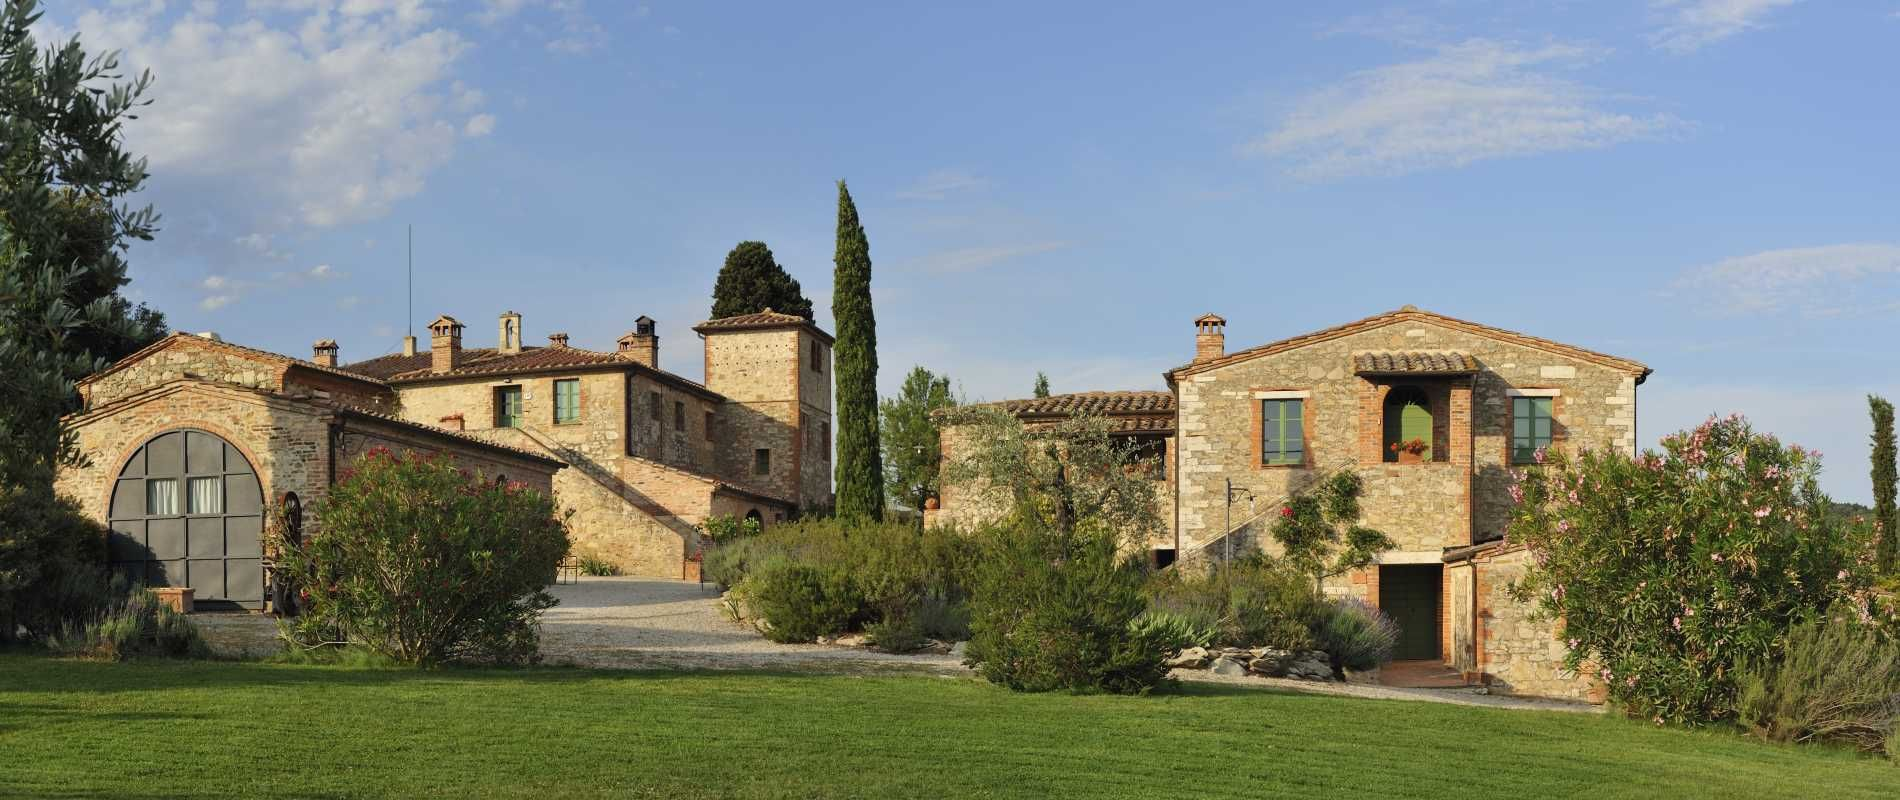 Villas Near Siena Italy villa estate and boutique hotel in siena #villa #property